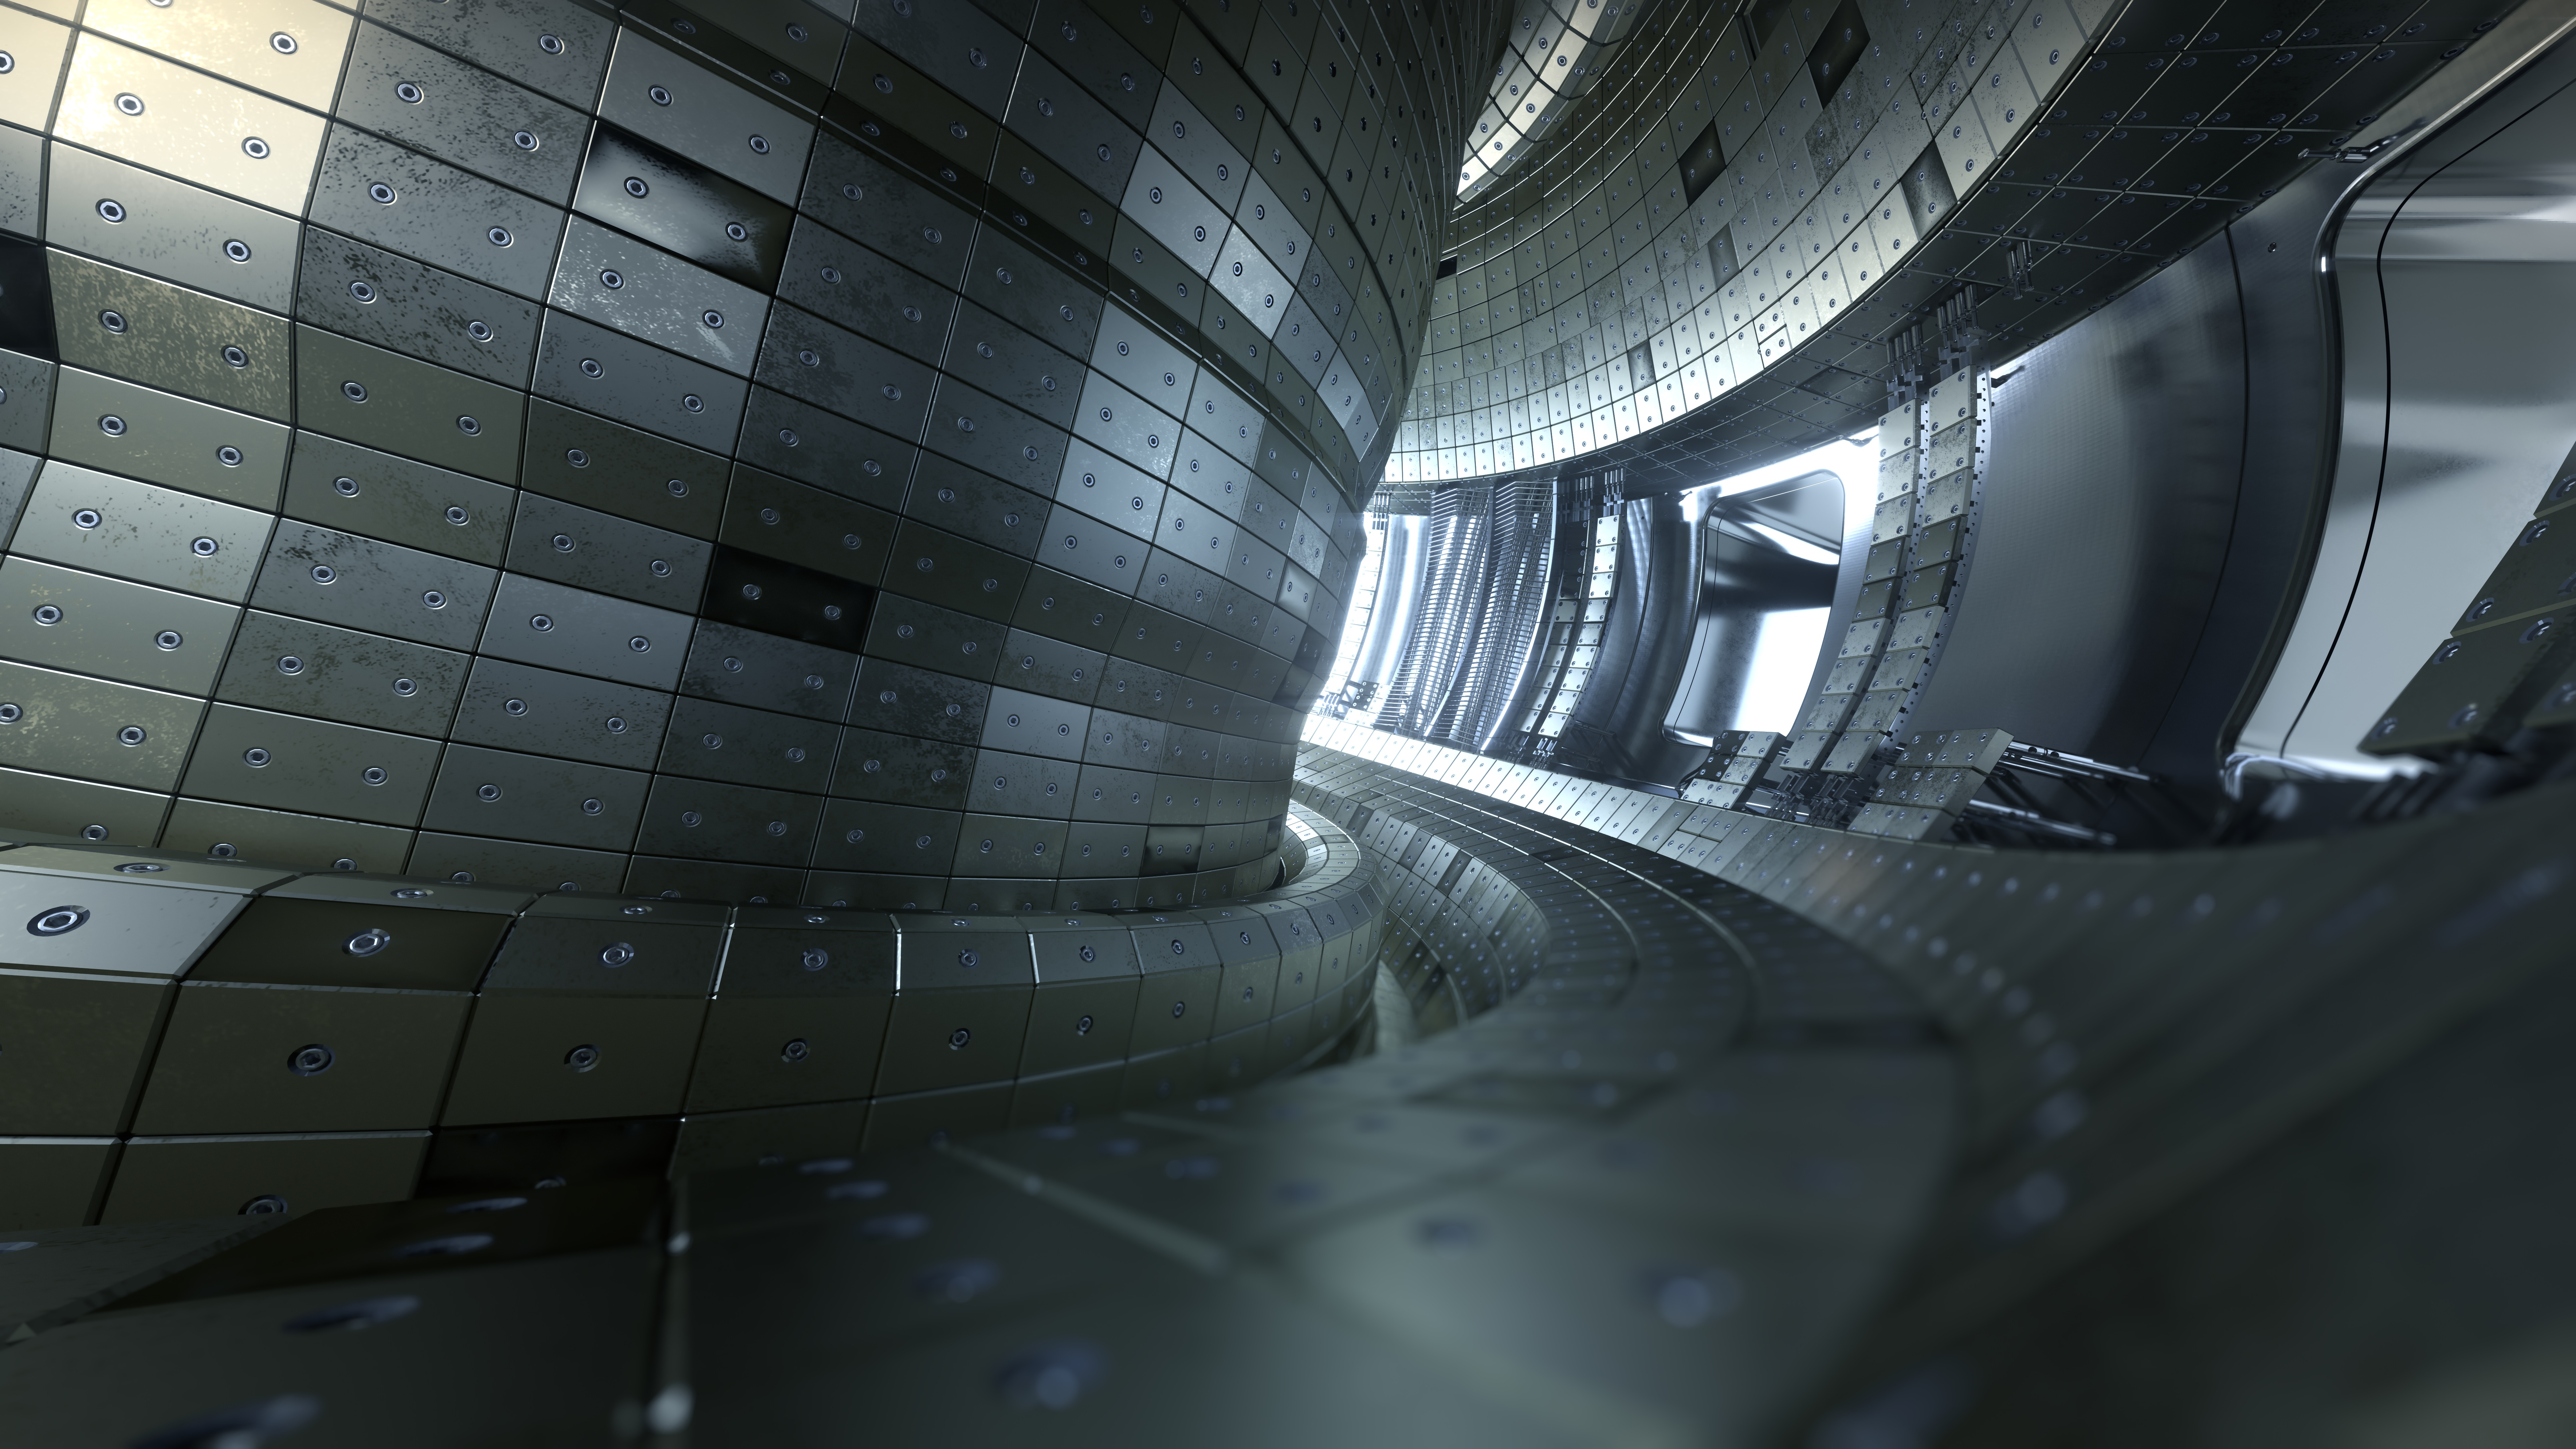 A pre-commercial pilot version of a fusion power plant could be operational in the USA by 2040 if